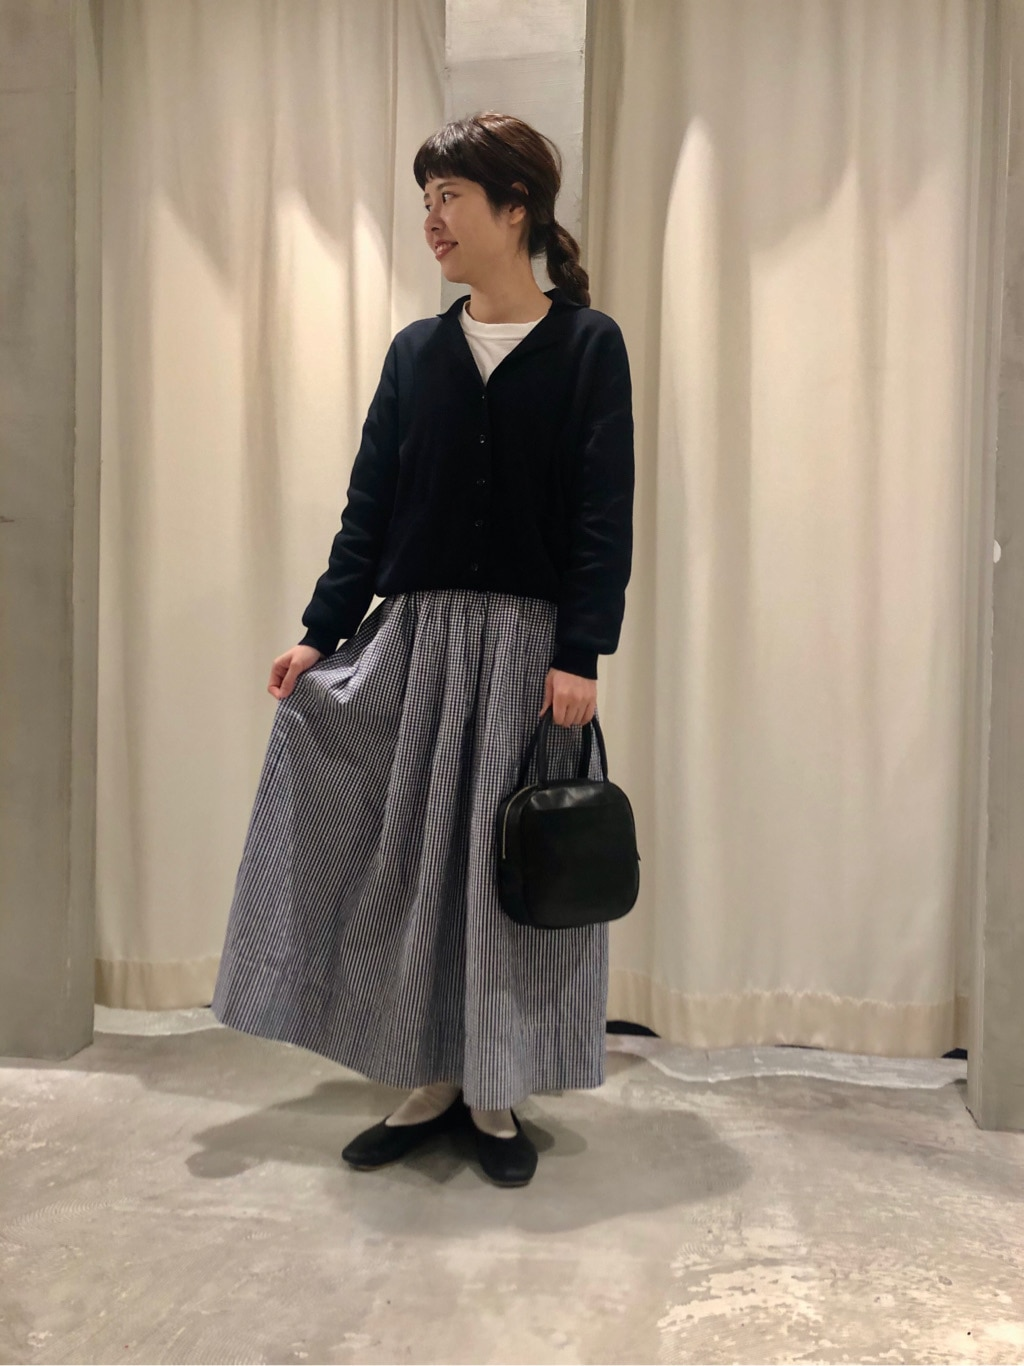 Dot and Stripes CHILD WOMAN 横浜モアーズ 身長:160cm 2020.03.12